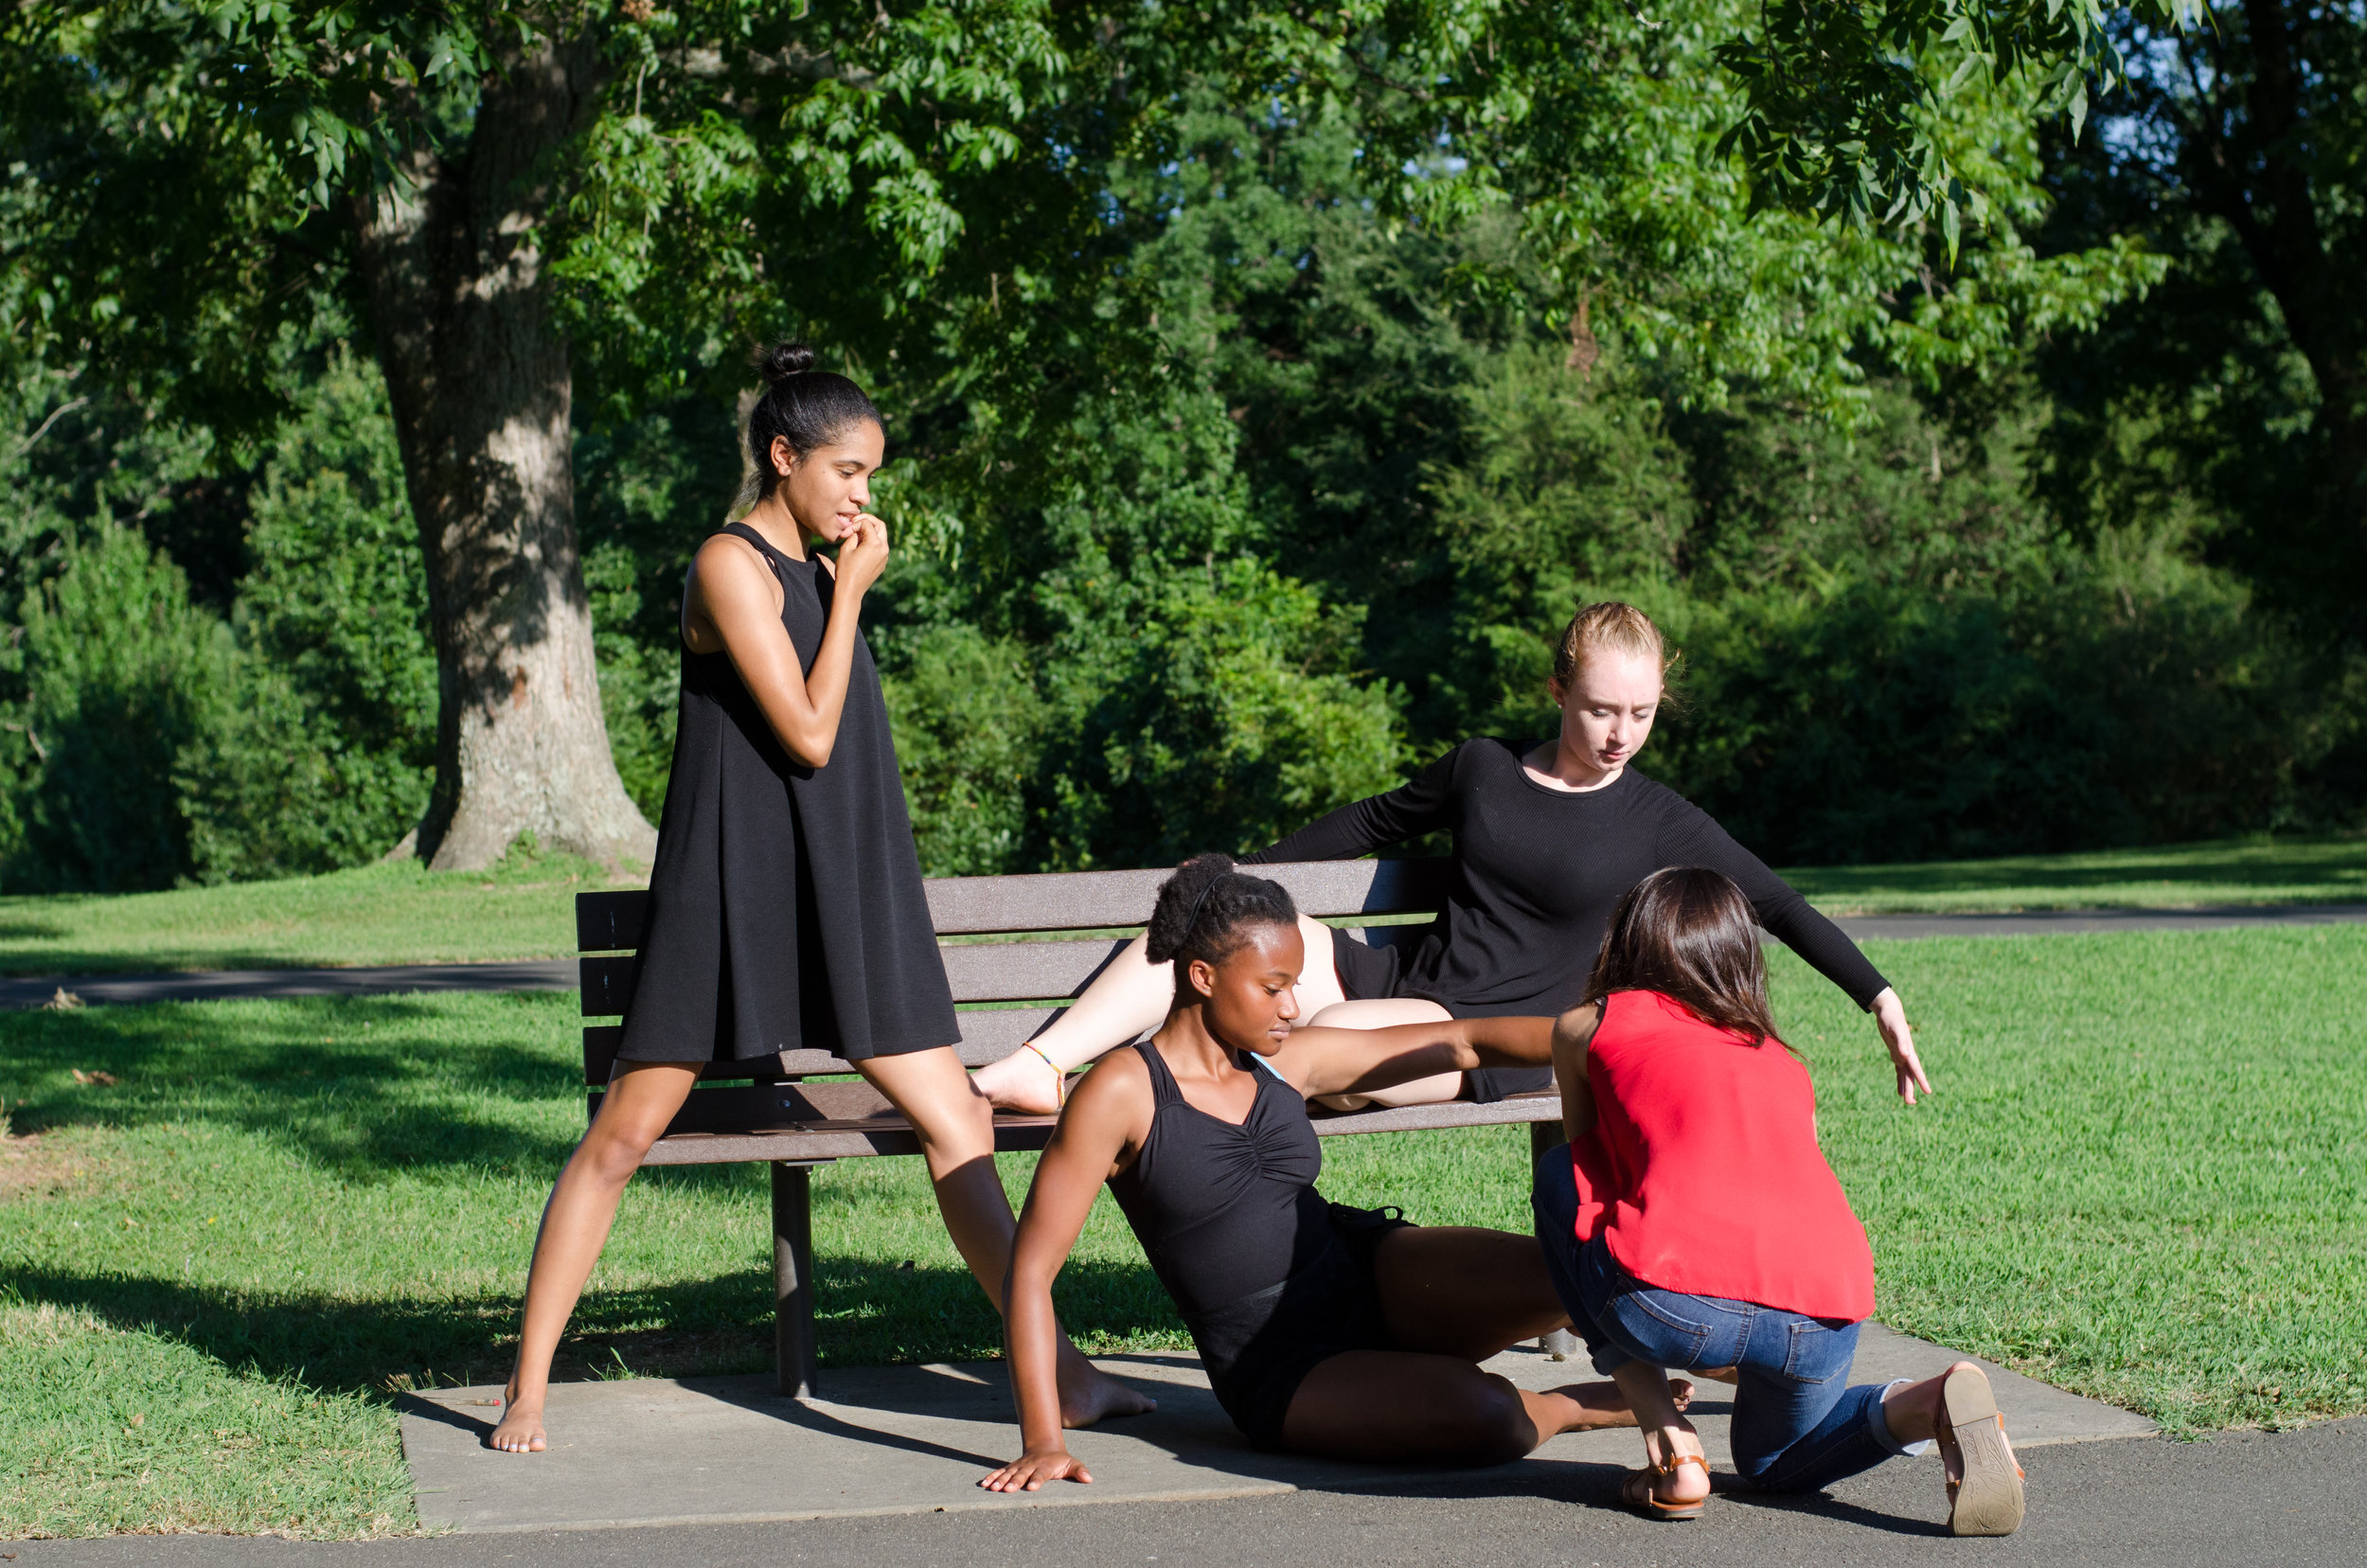 Dancers of Franklin Academy, with Festival Director Masha Maddux, photographed by George Randy Bass.